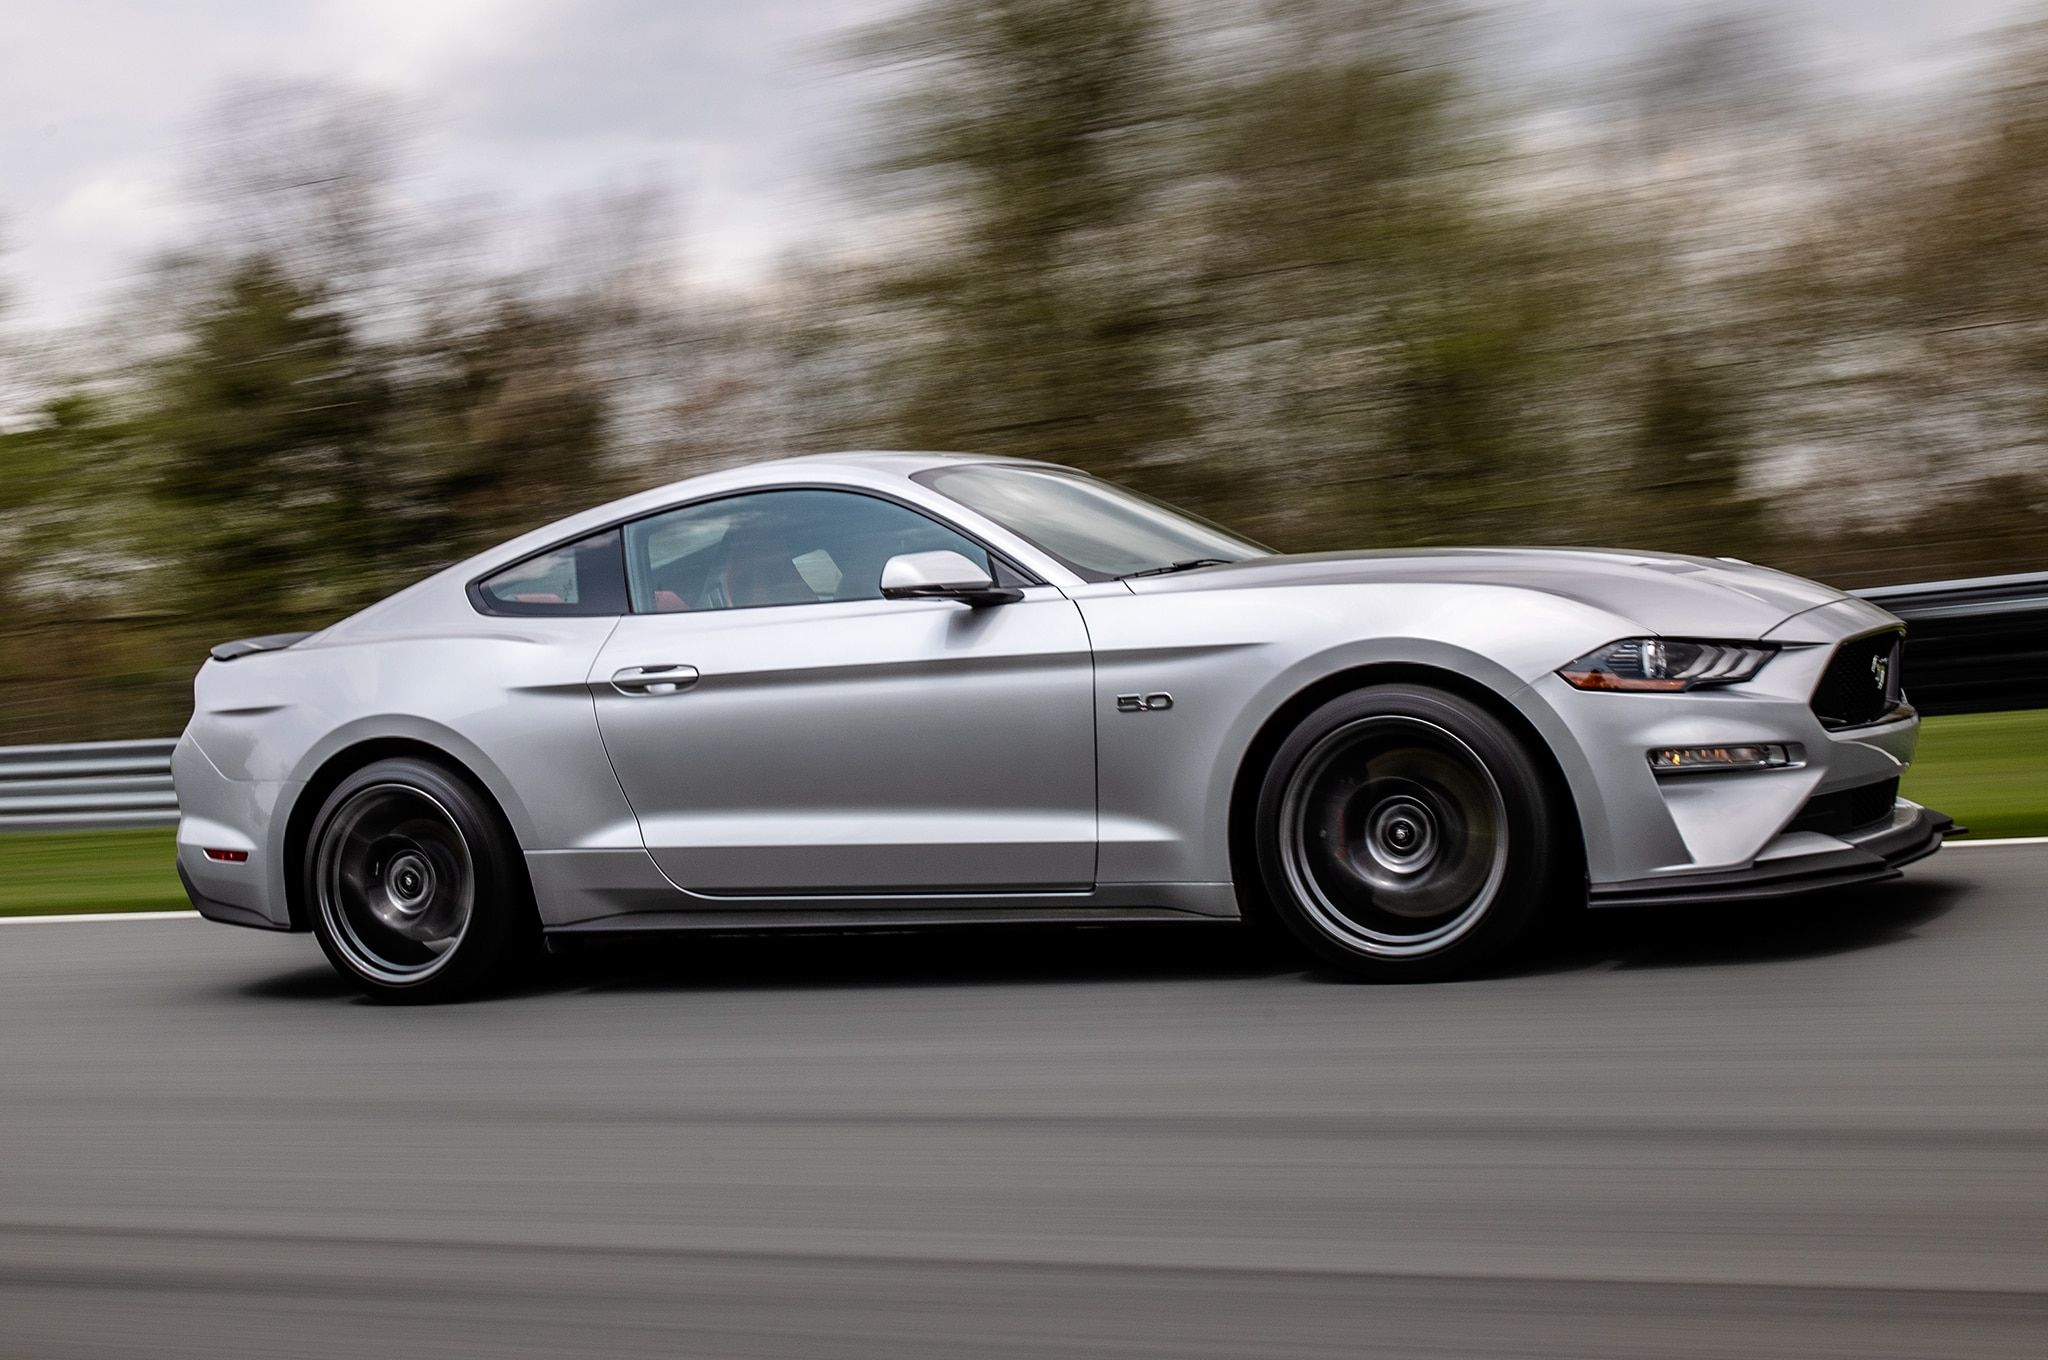 Now you can strengthen your ford mustang gt with 700 dang horsepower about a year and a half ago ford announced plans to offer the roush supercharger kit